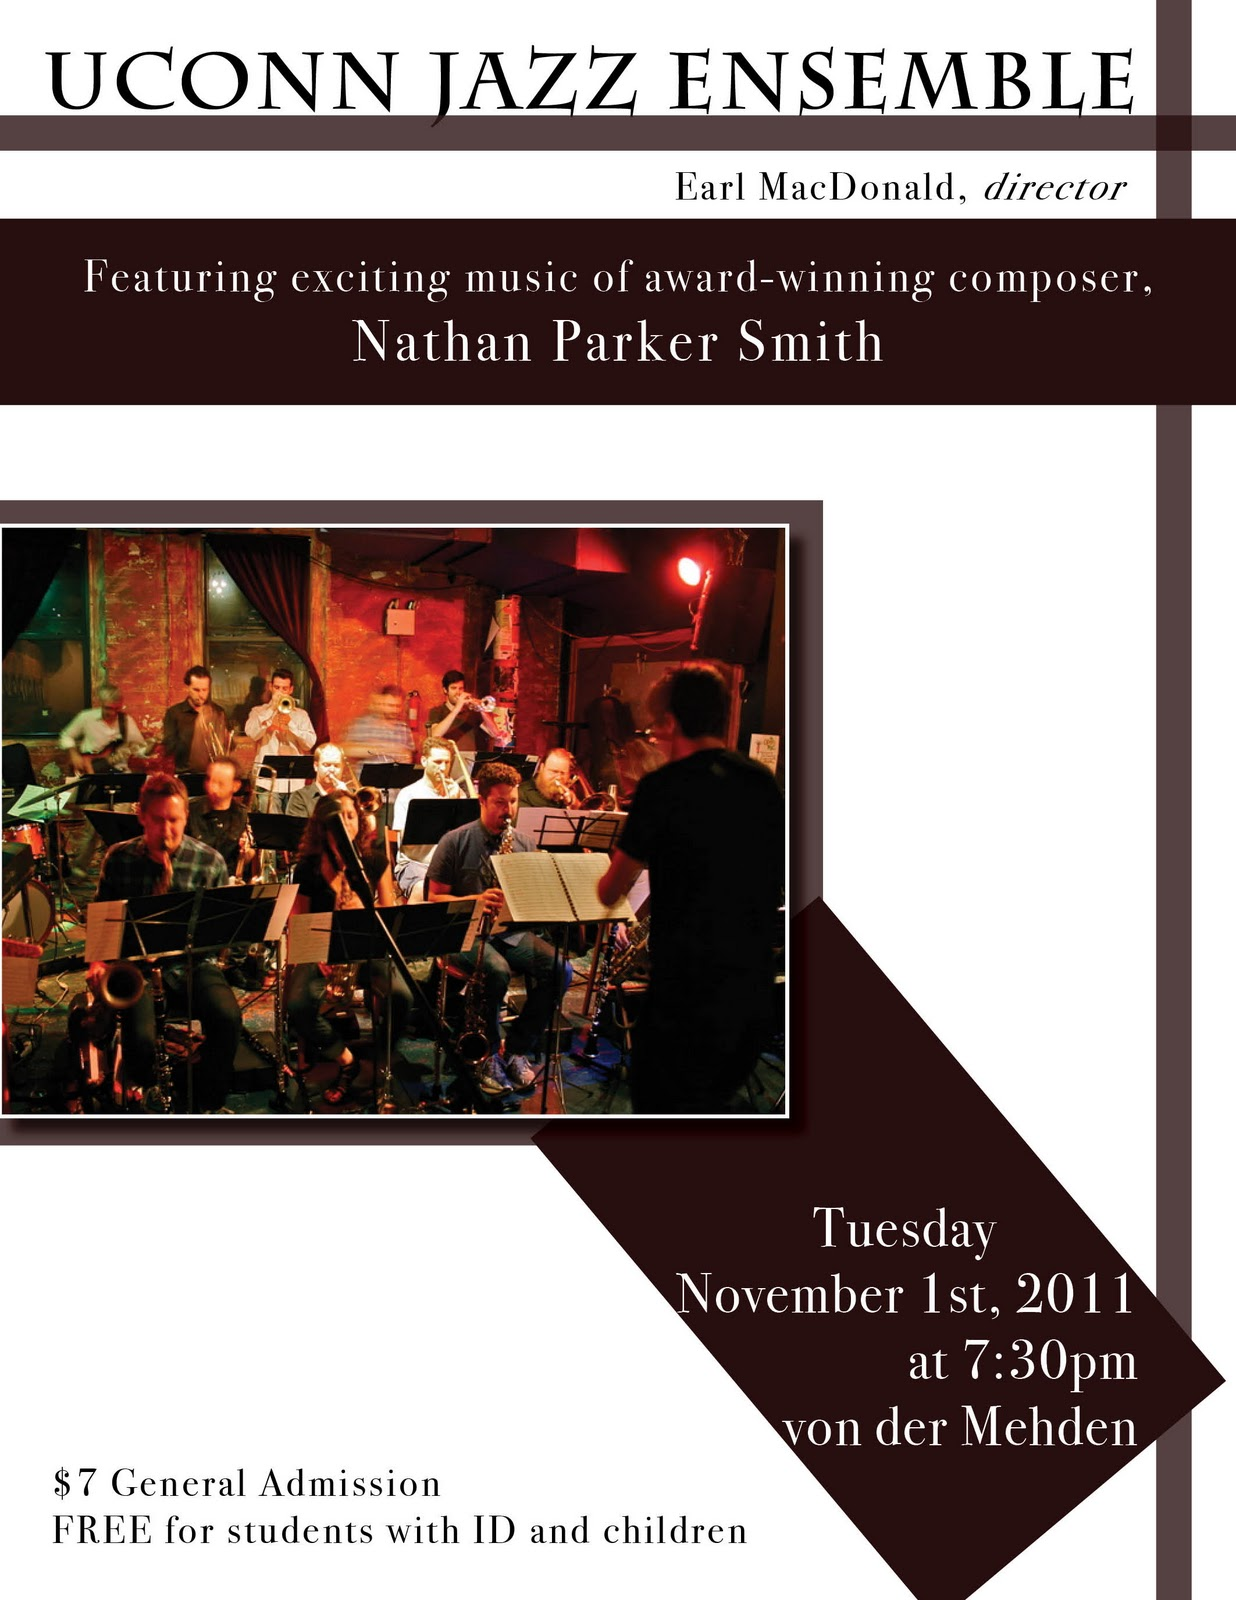 The UConn Jazz Ensemble, directed by Earl MacDonald, performs the music of Nathan Parker Smith